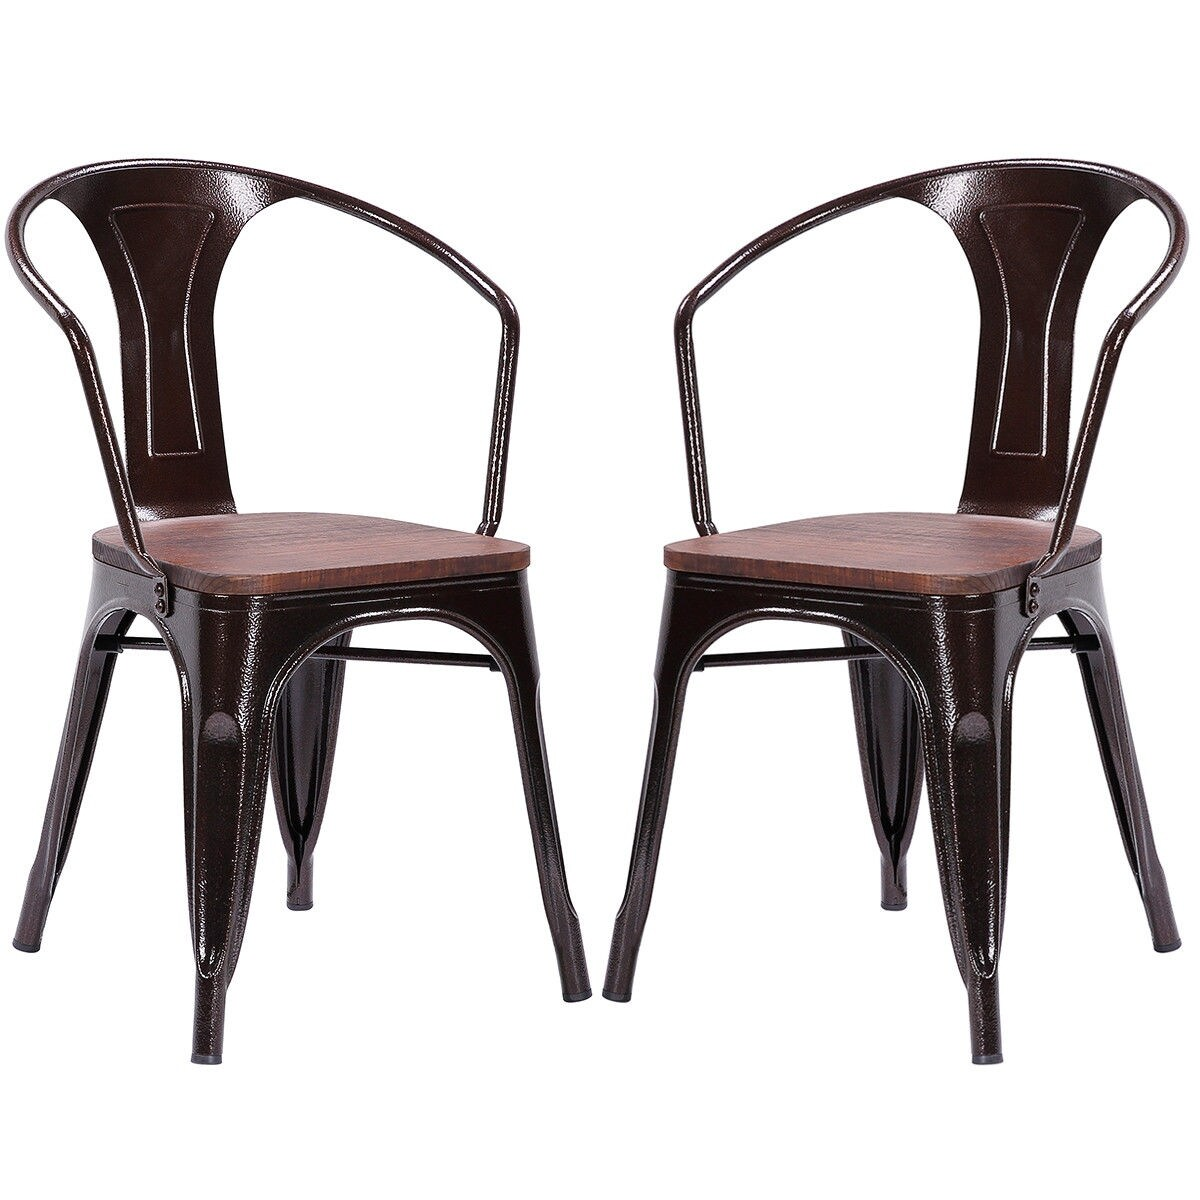 Shop Gymax Set Of 2 Armchair Stool Dining Chair Metal Wood Home